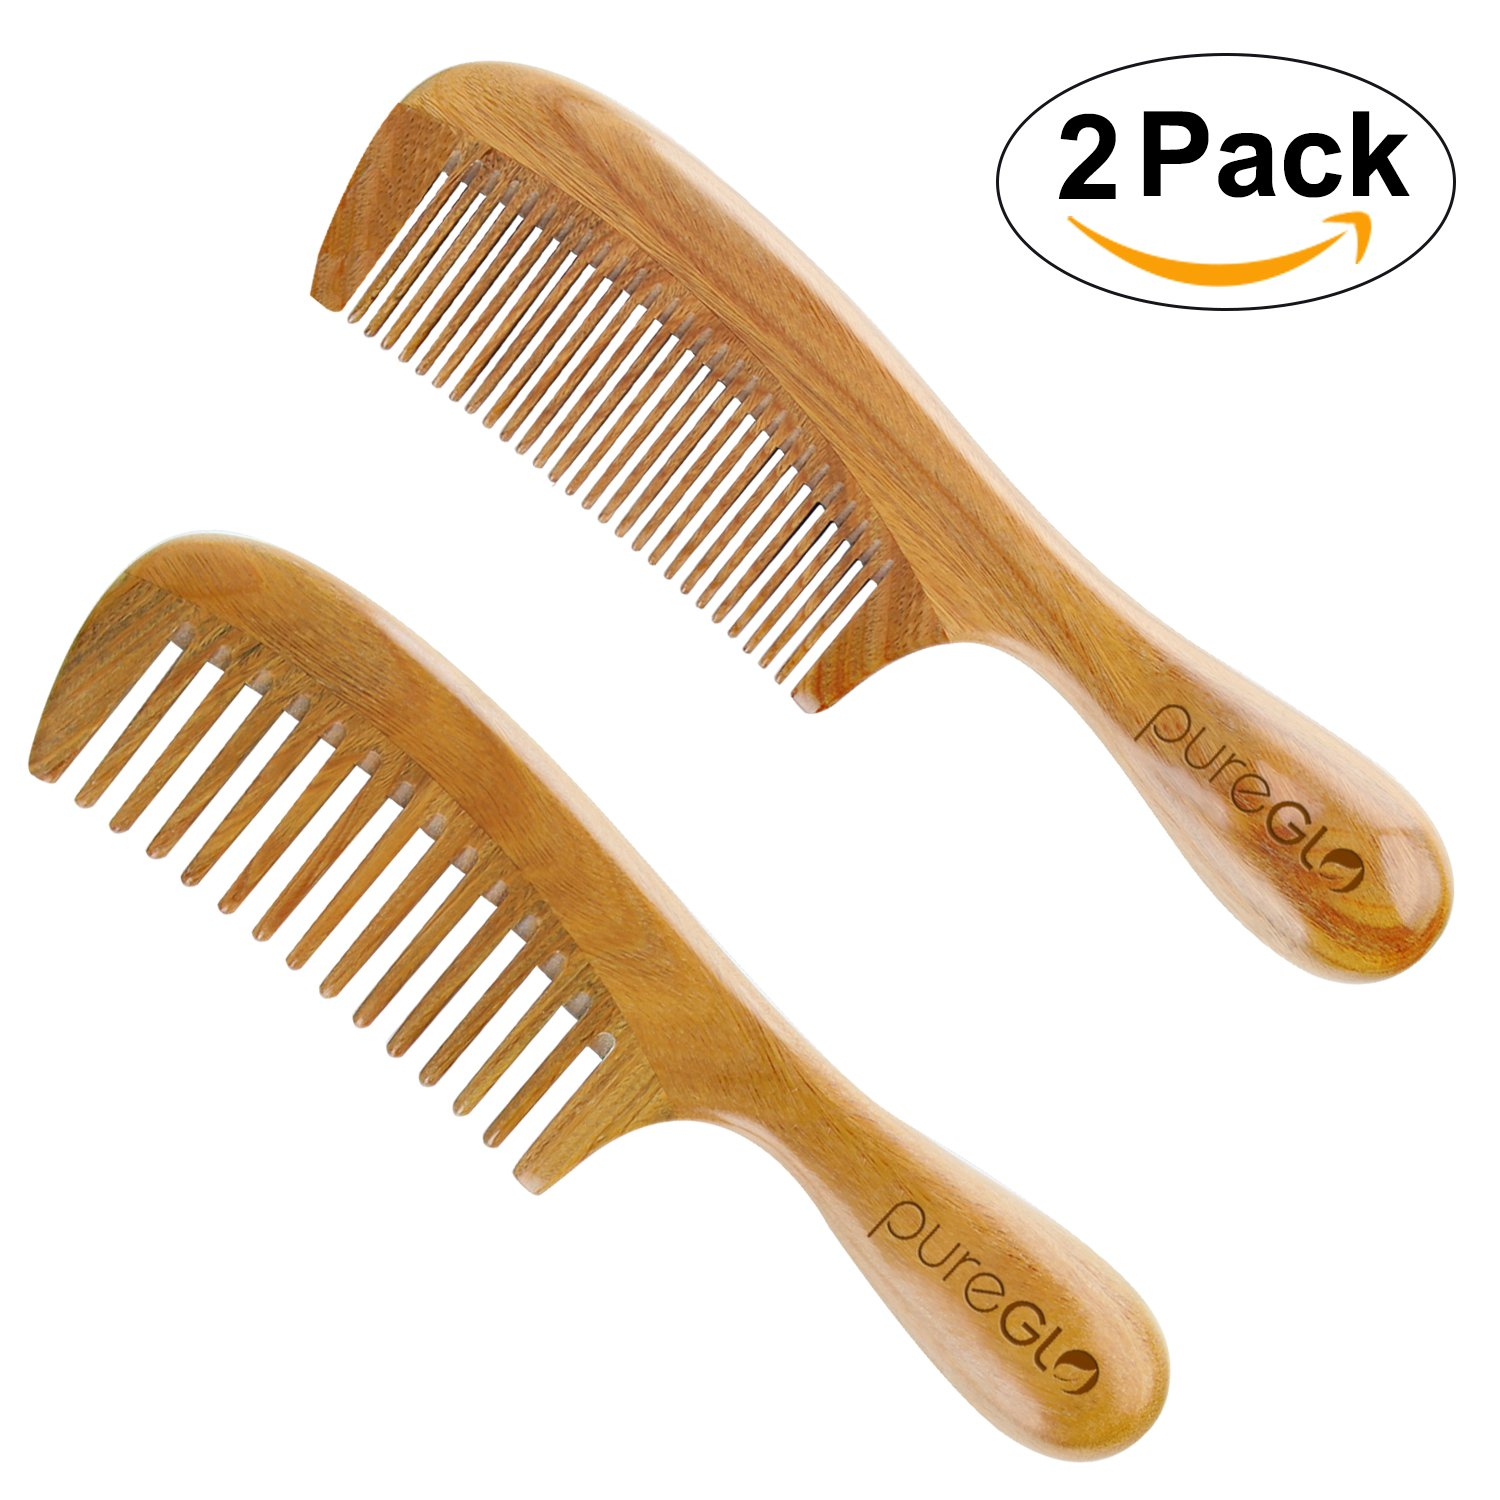 All Natural Hair Comb - pureGLO No Static Fine & Wide Tooth Comb Set - Detangling Wooden Combs for Men Women and Kids